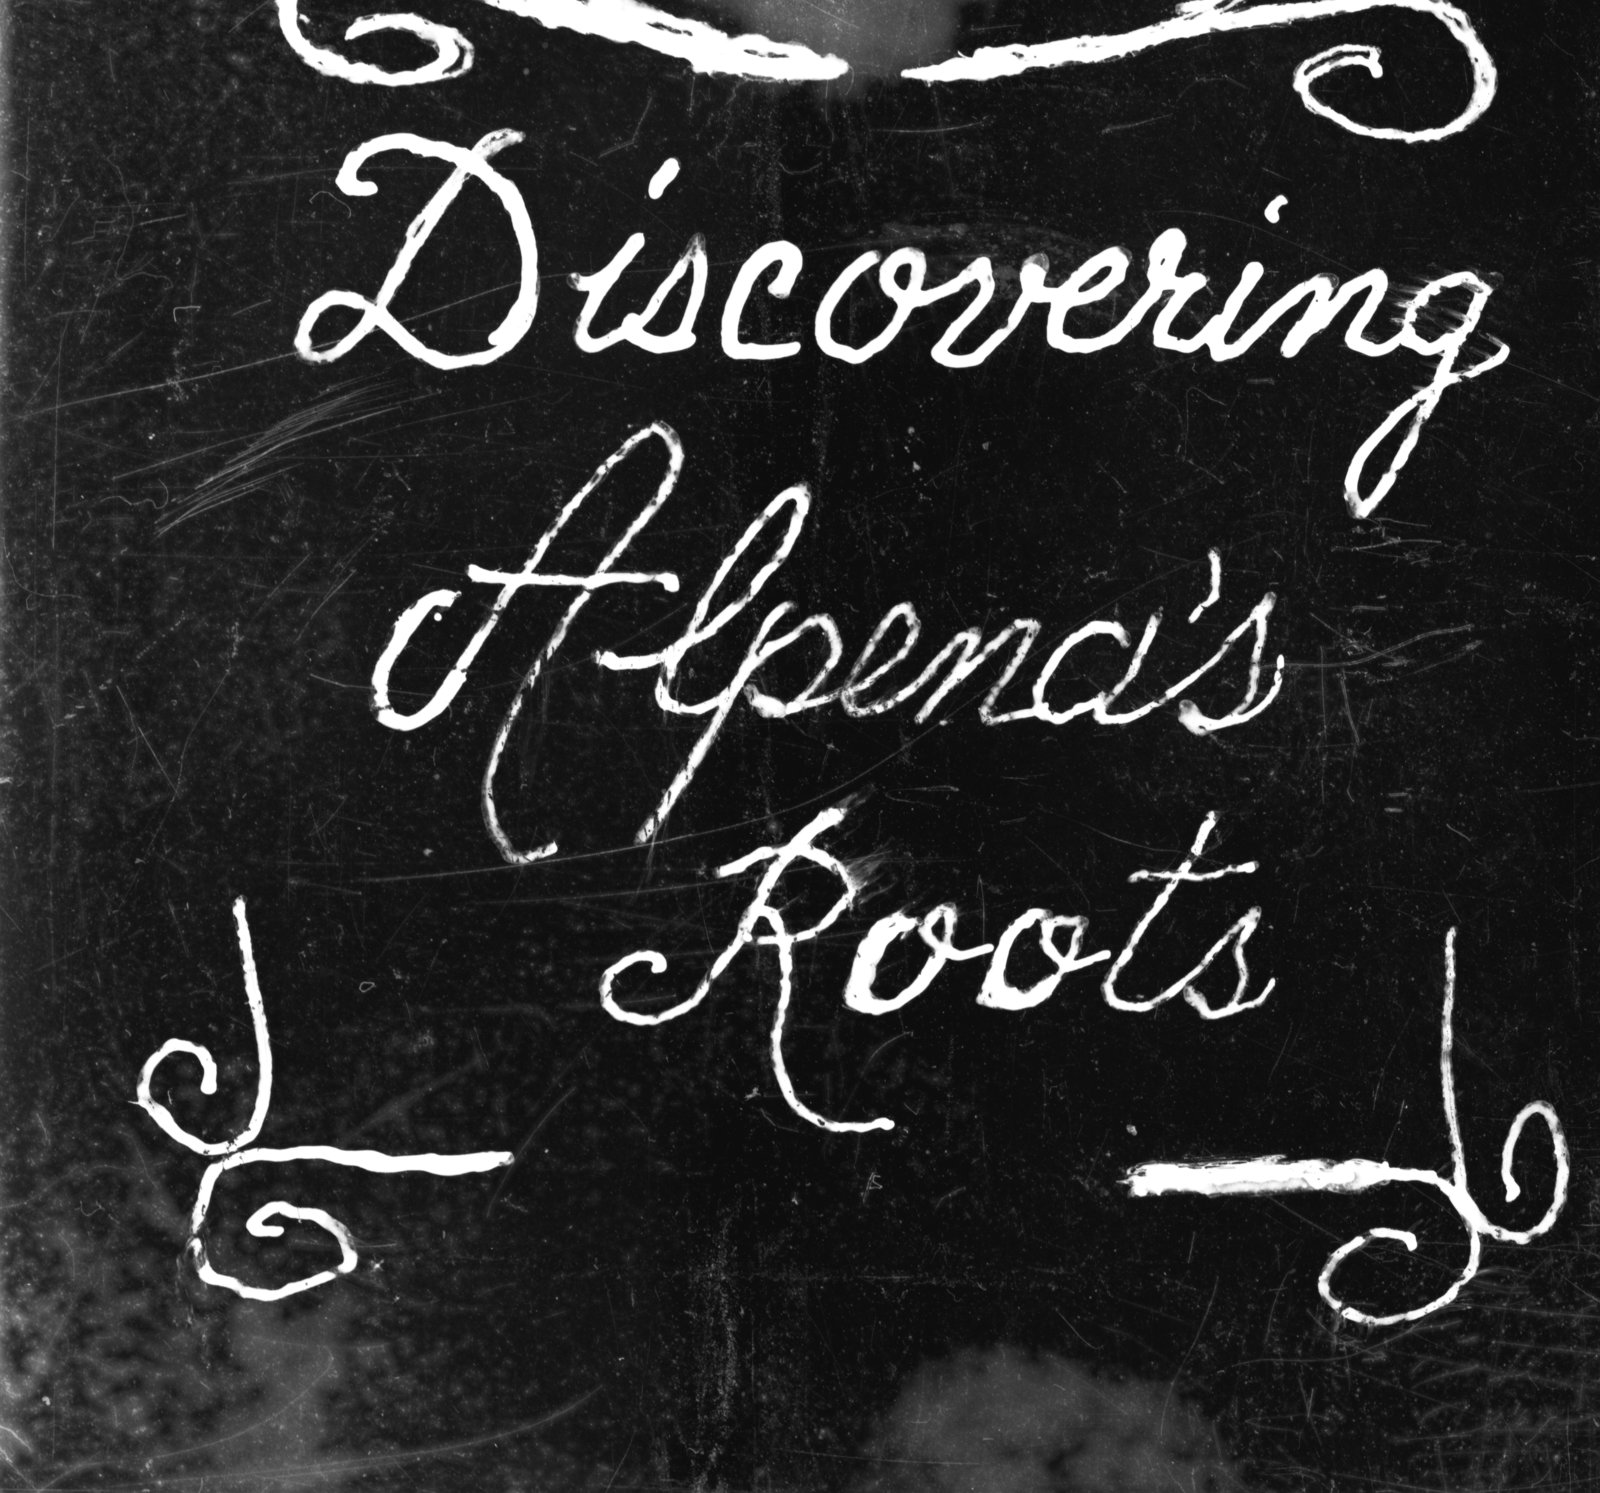 Ann Taber's Finding Alpena's Roots